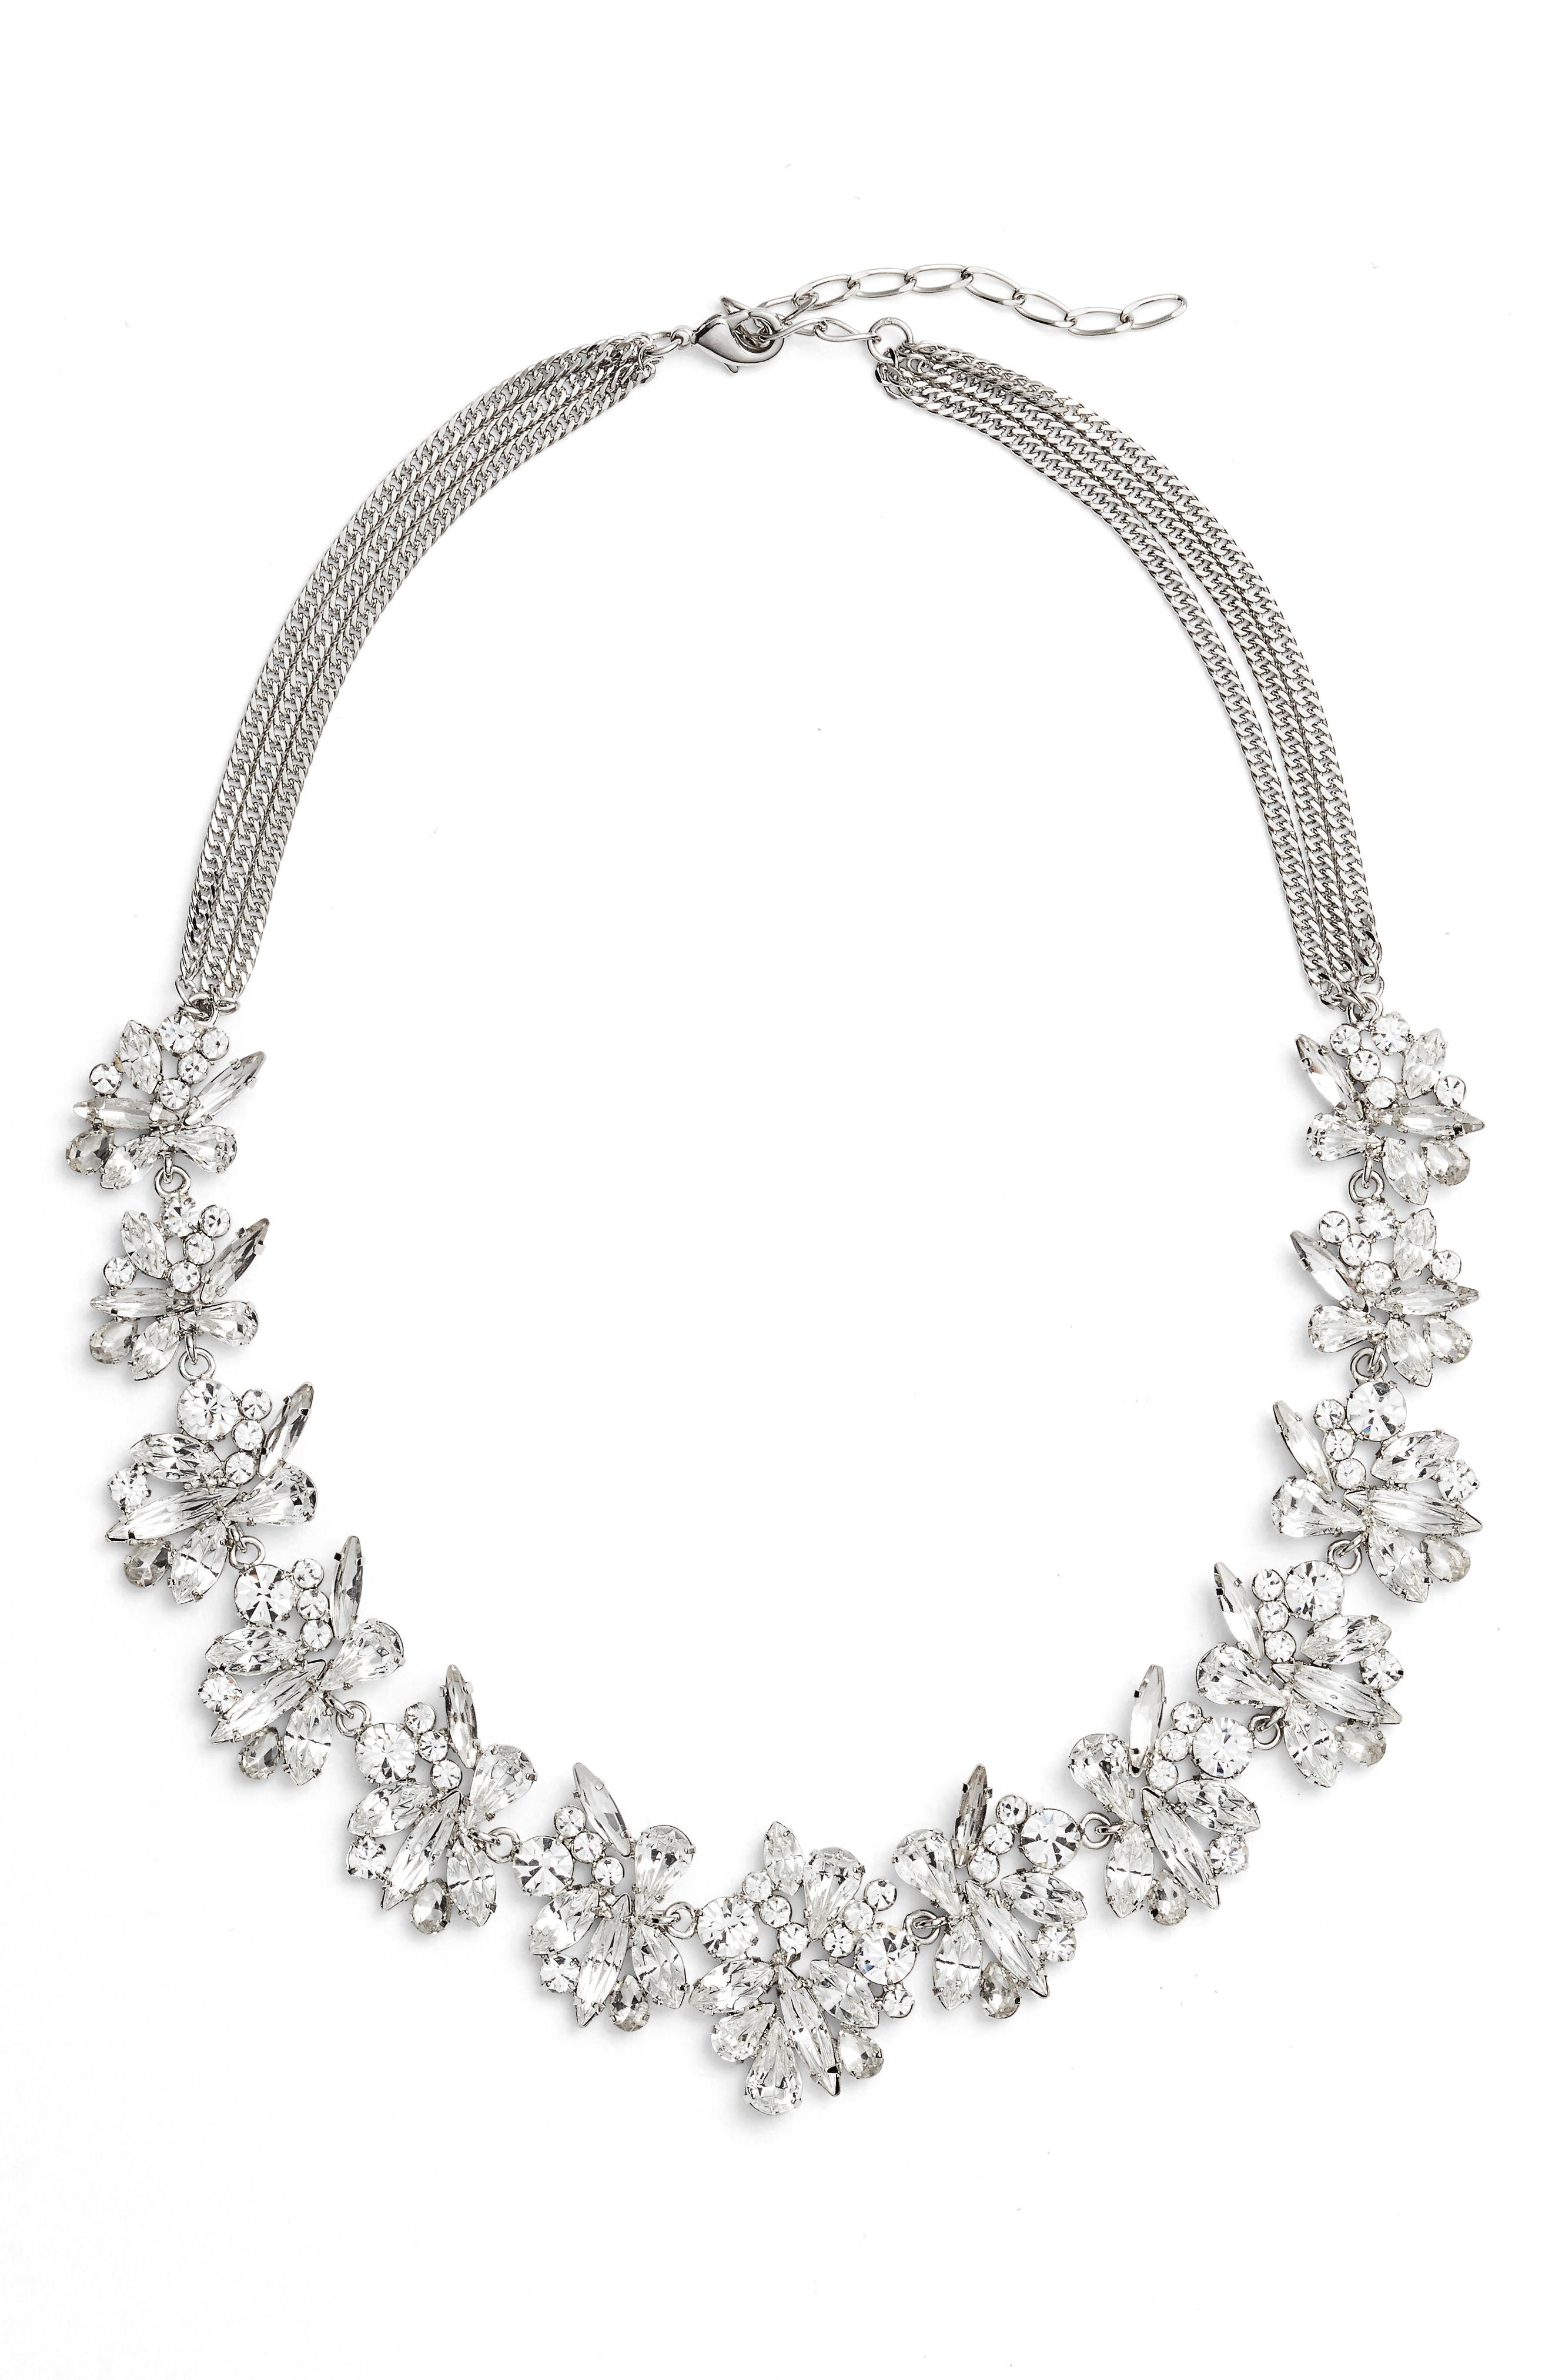 Main Image - CRISTABELLE Crystal Collar Necklace